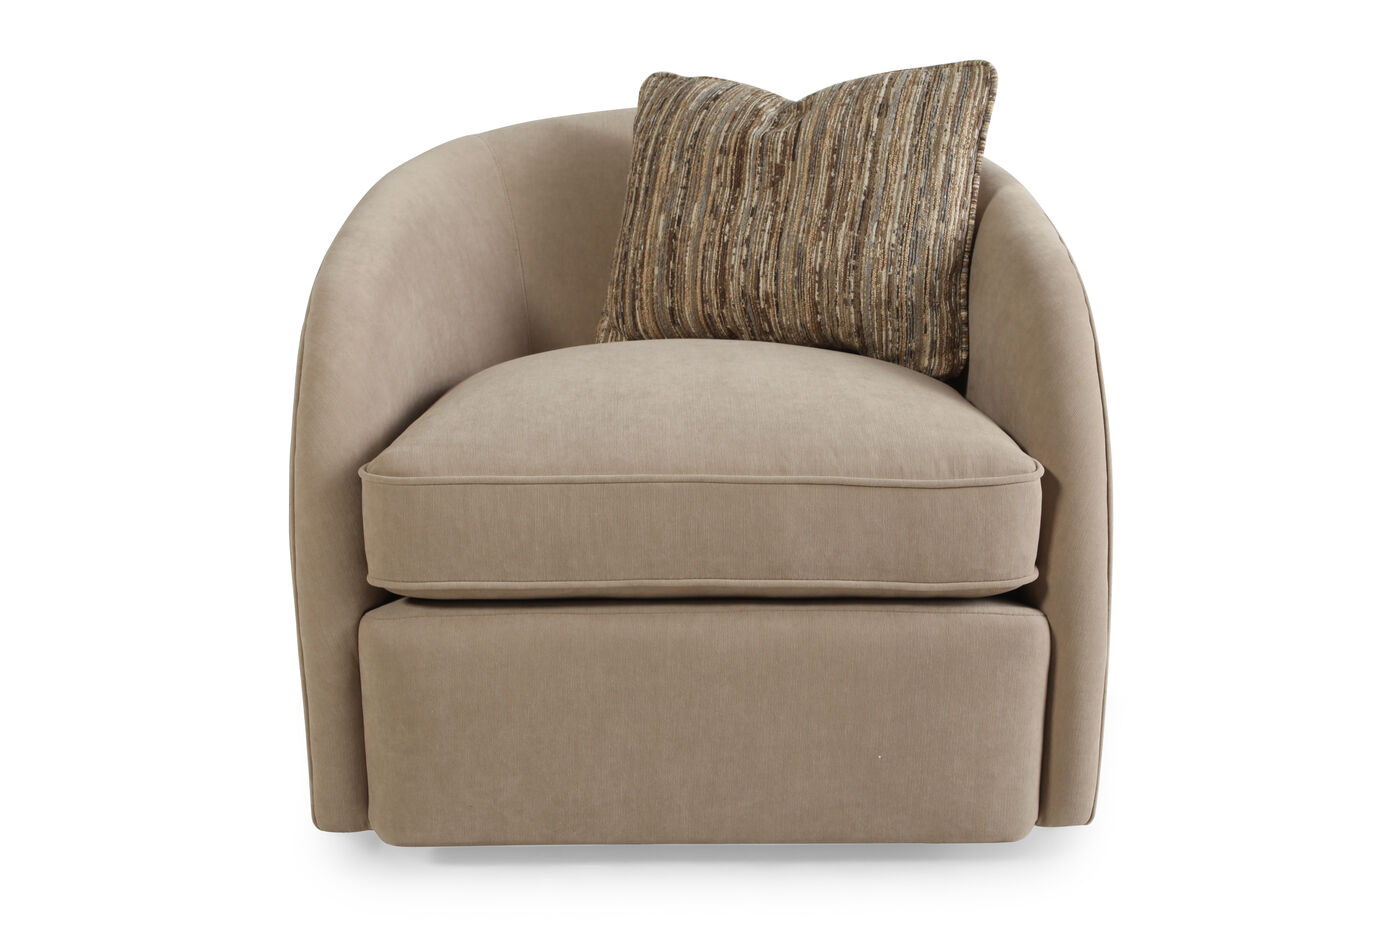 Bernhardt turner swivel chair mathis brothers furniture for Swivel chairs